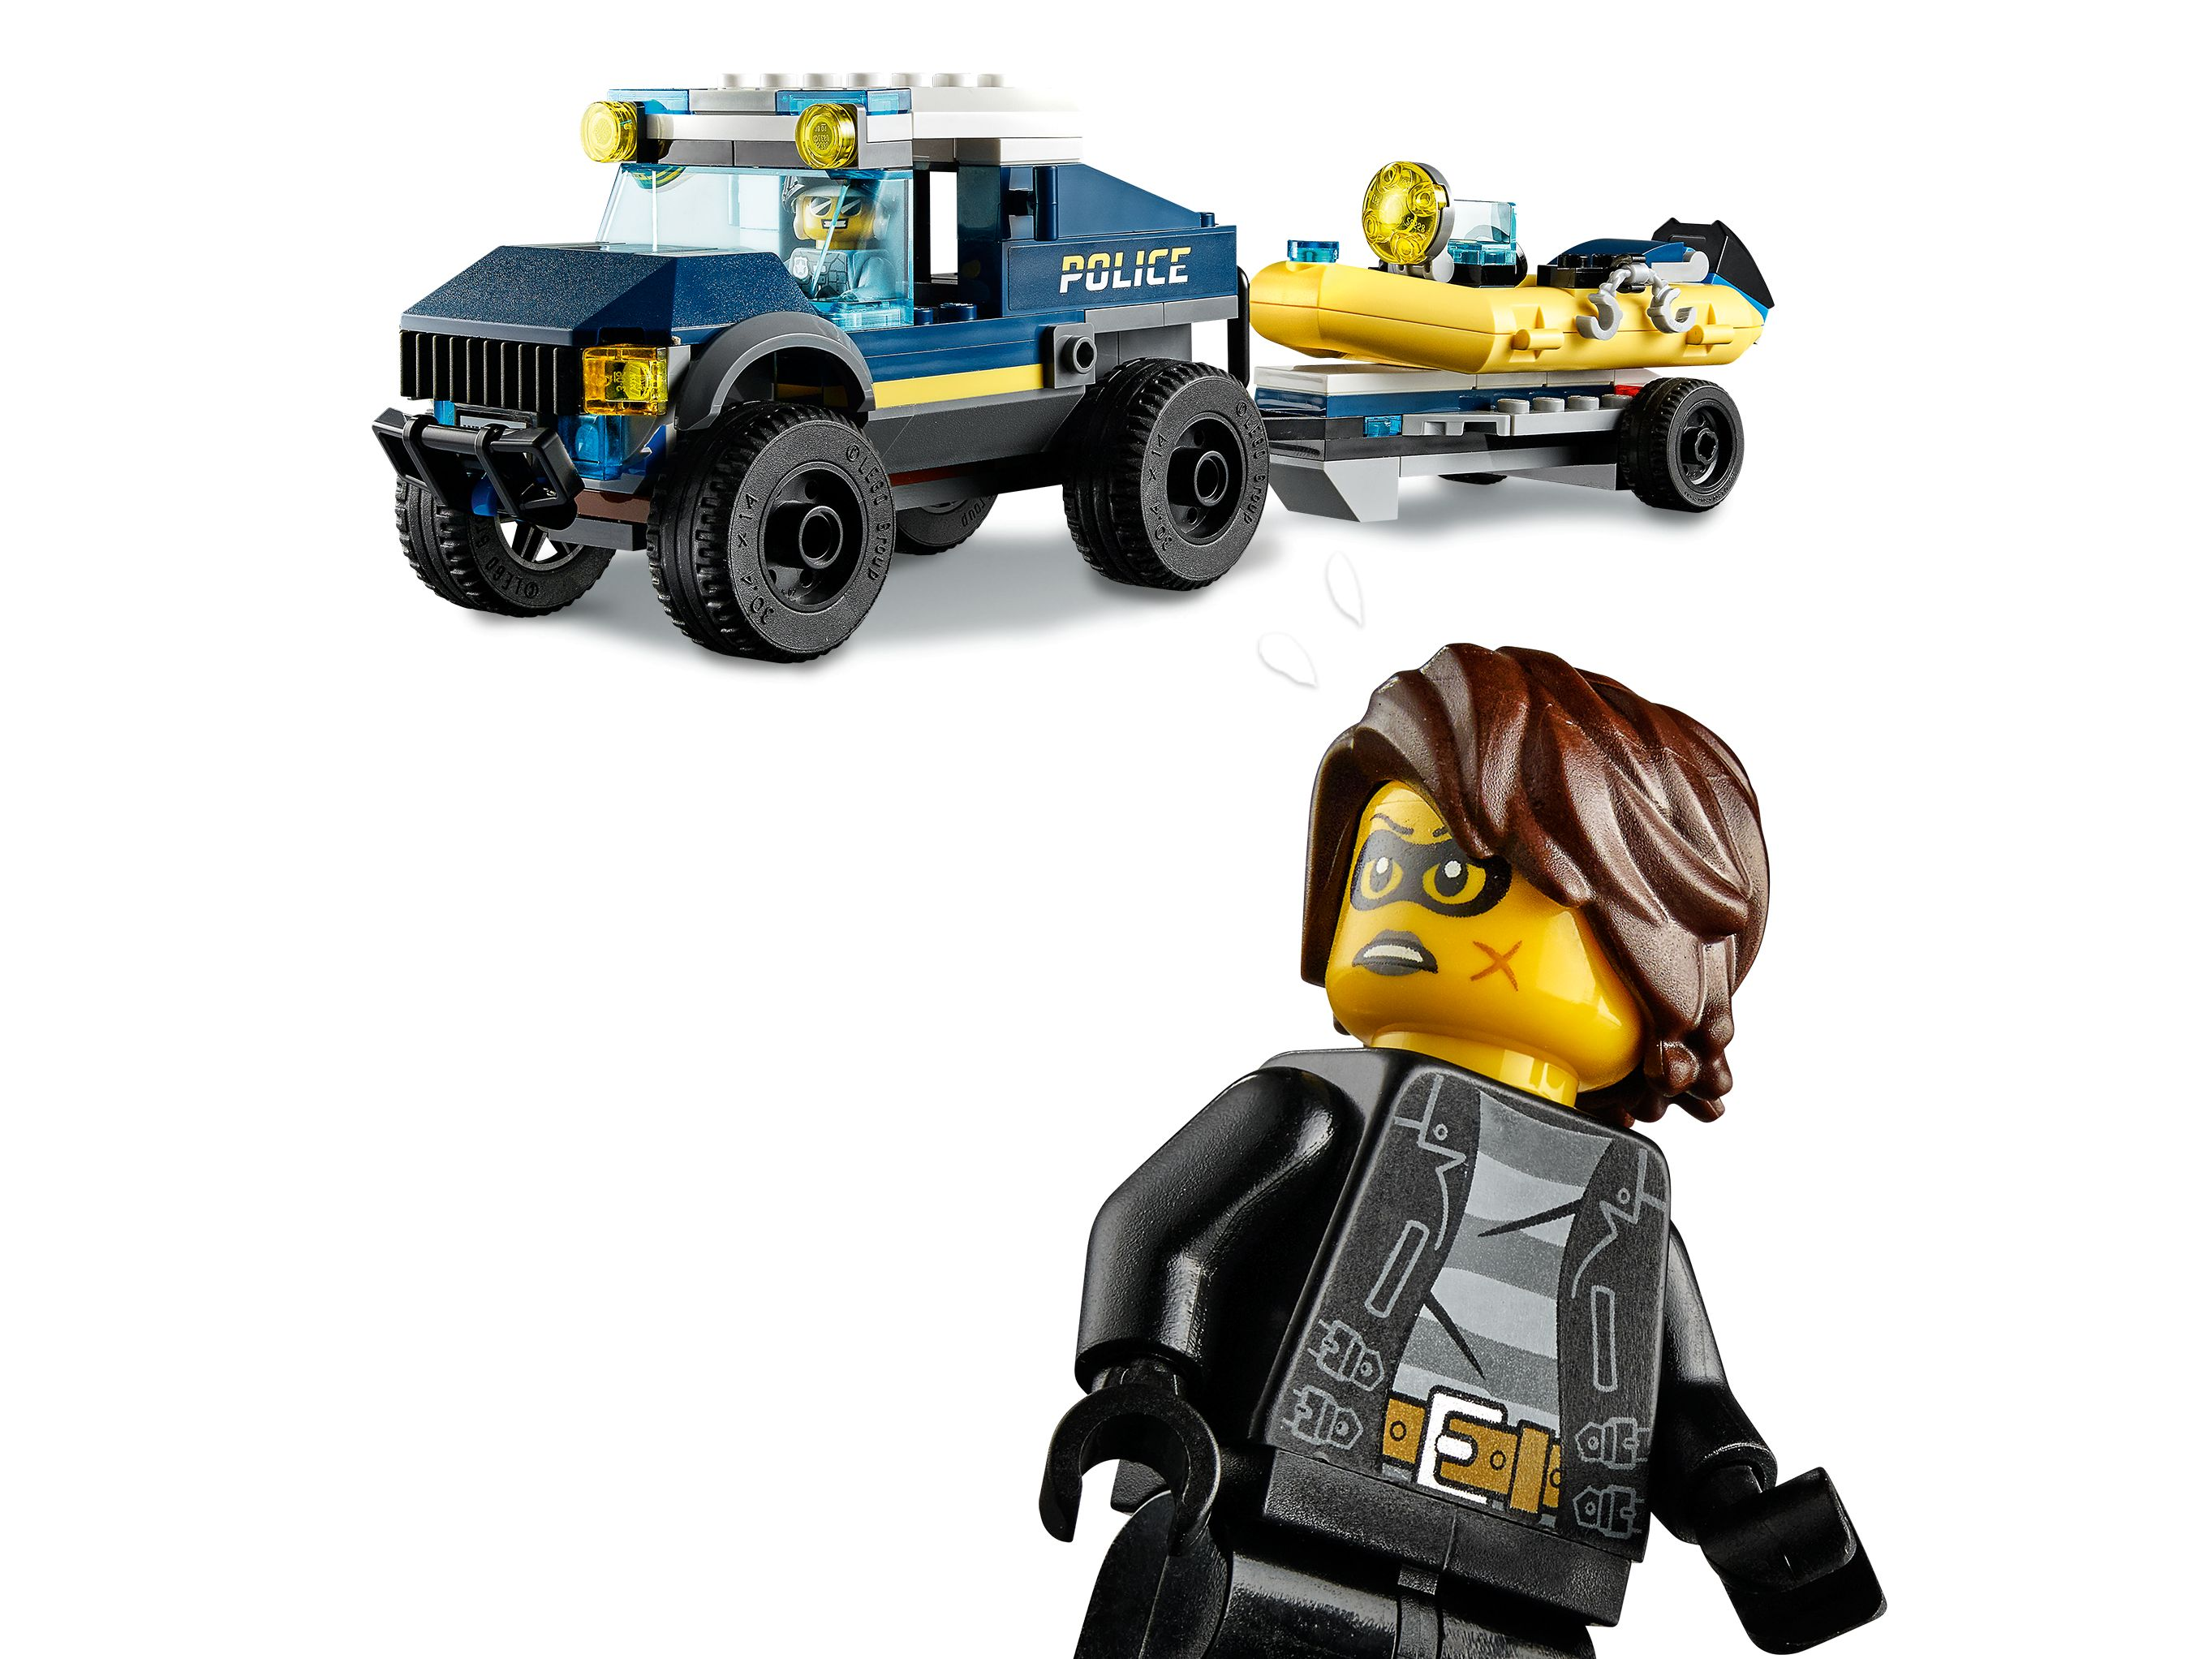 LEGO City 60272 Transport des Polizeiboots LEGO_60272_alt5.jpg